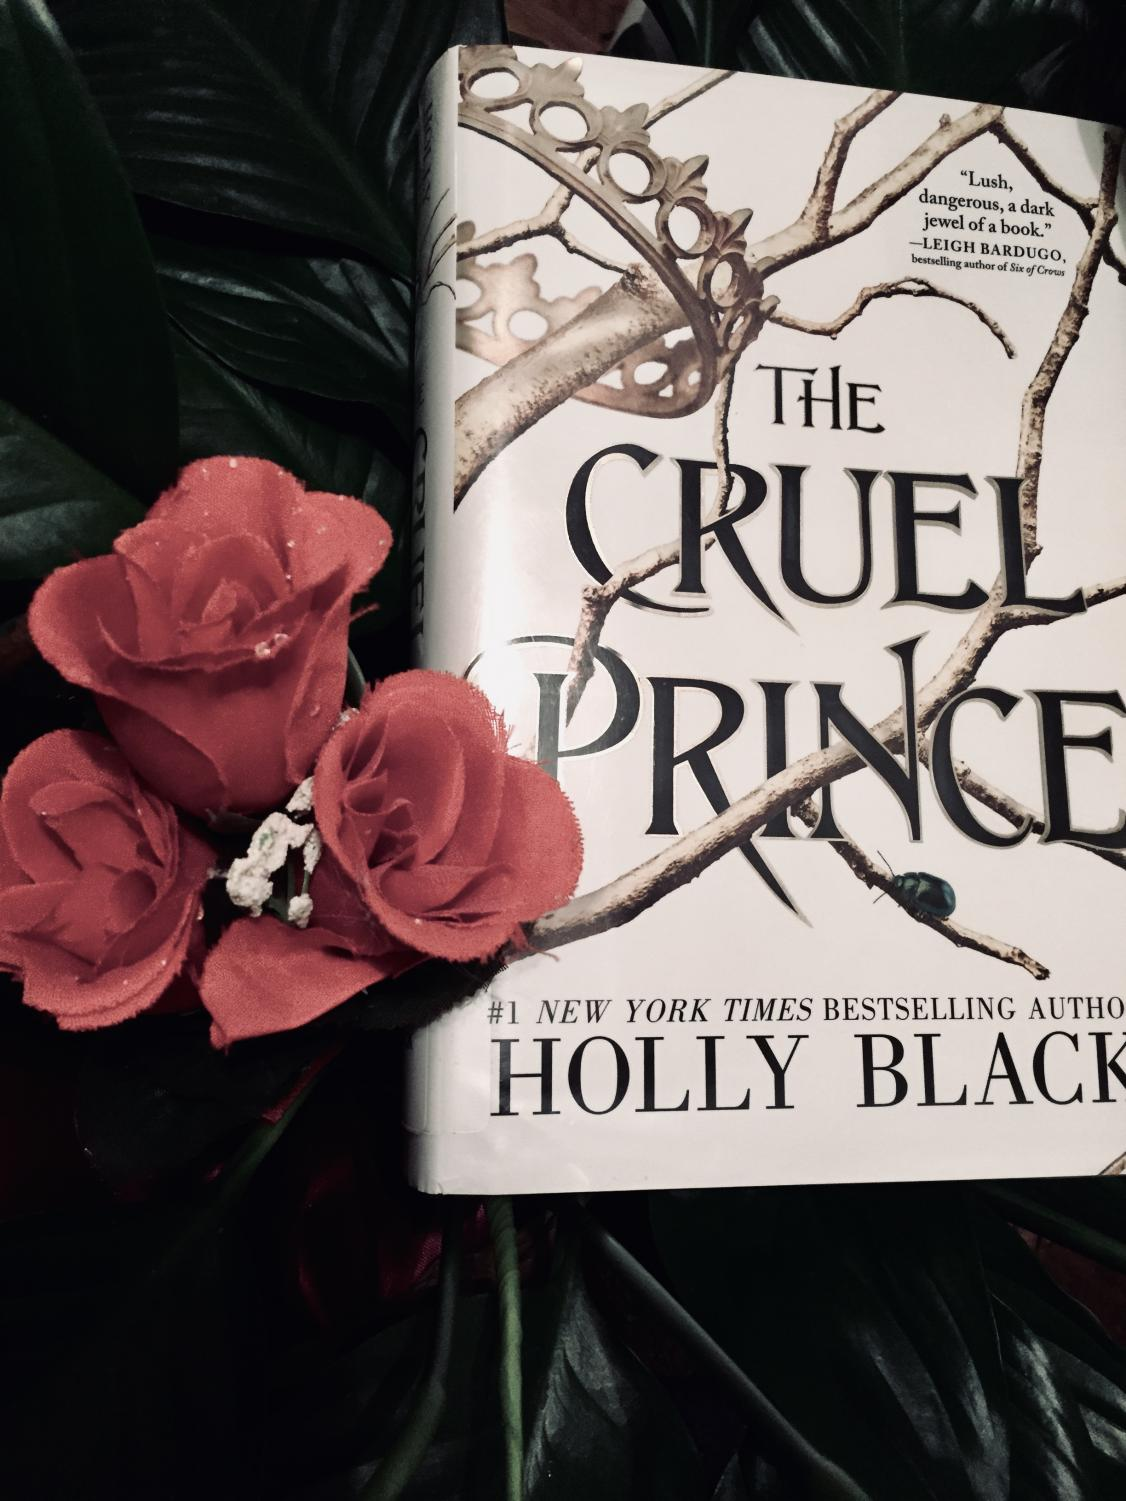 The Cruel Prince showcases an intriguing blend of politics, fantasy, and lush and multi-layered characters.